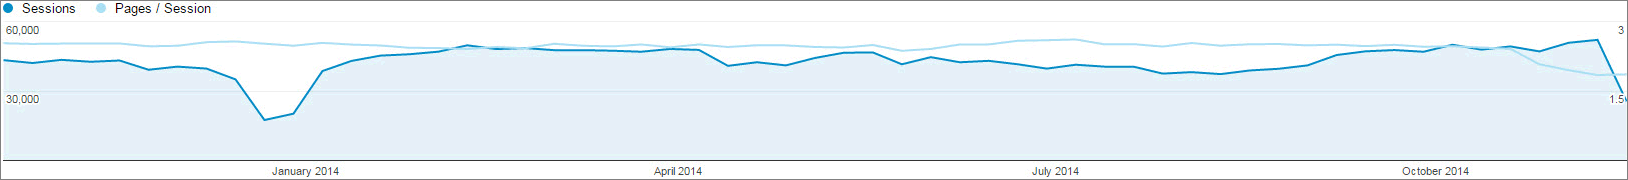 Graph showing pages per session.